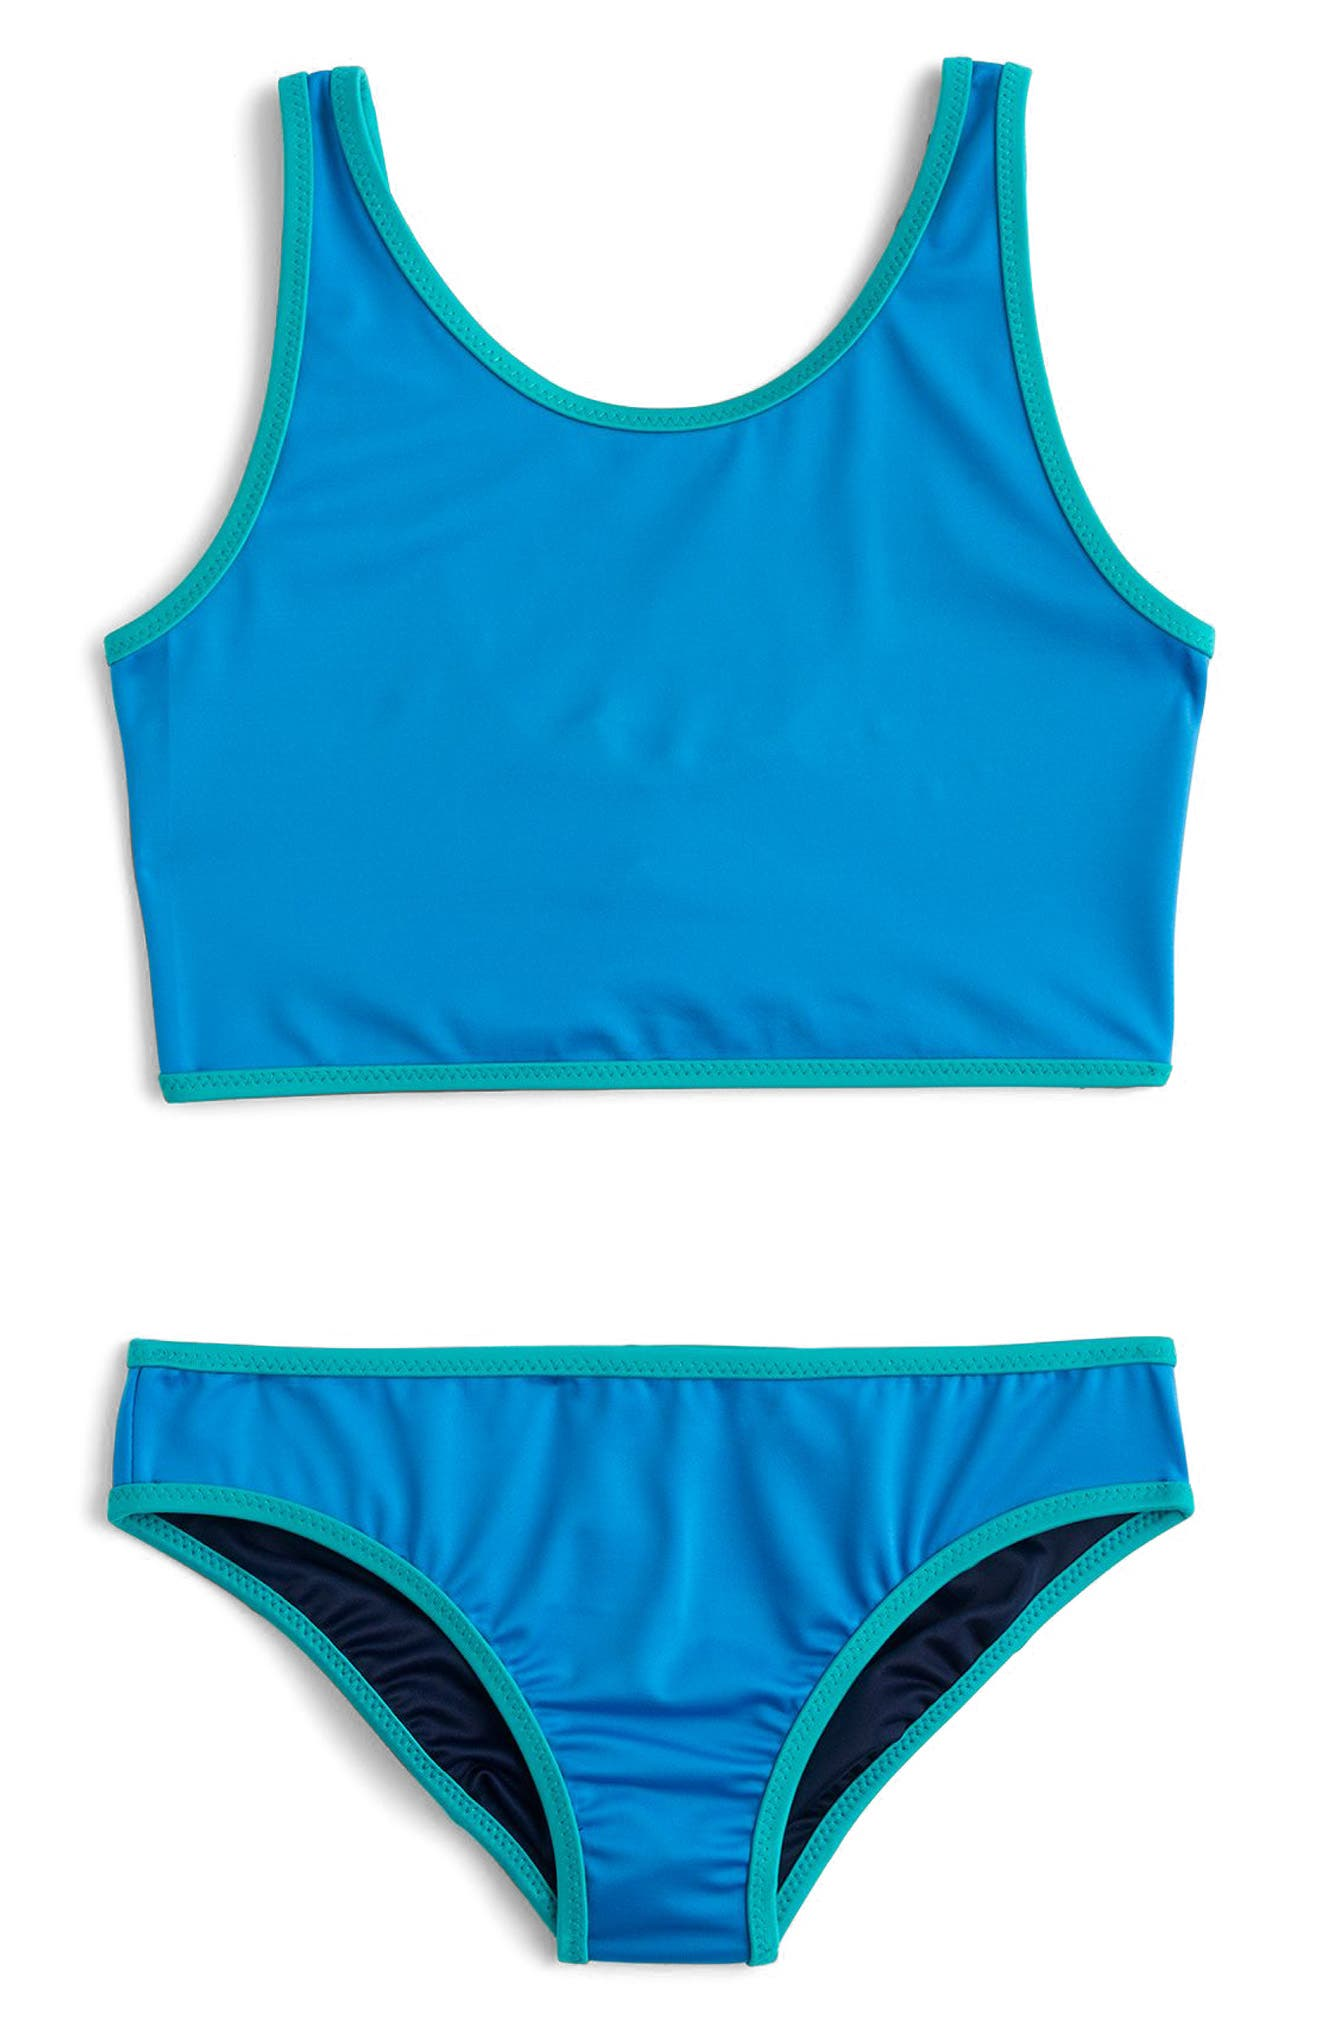 Alternate Image 1 Selected - crewcuts by J.Crew Reversible Two-Piece Swimsuit (Toddler Girls, Little Girls & Big Girls)